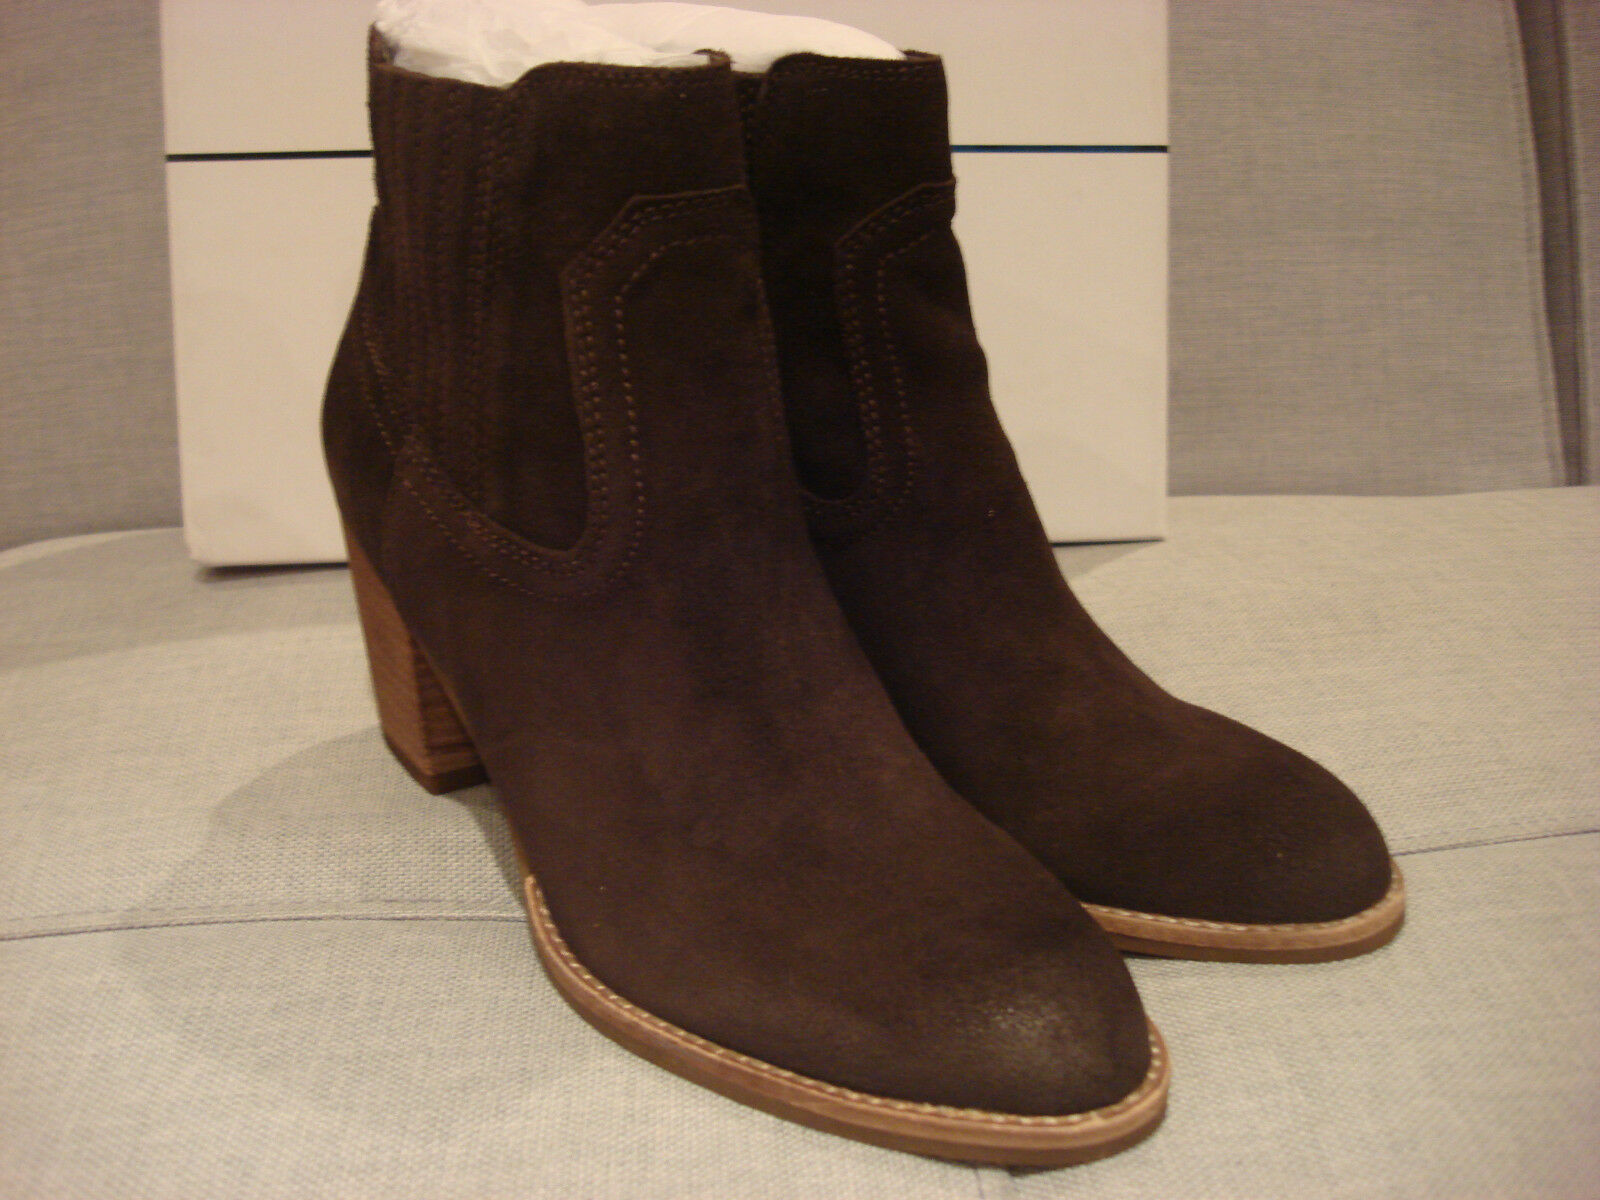 DOLCE VITA Femme JARI ANKLE ESPRESSO SUEDE Taille 8 Chaussures - BRAND NEW